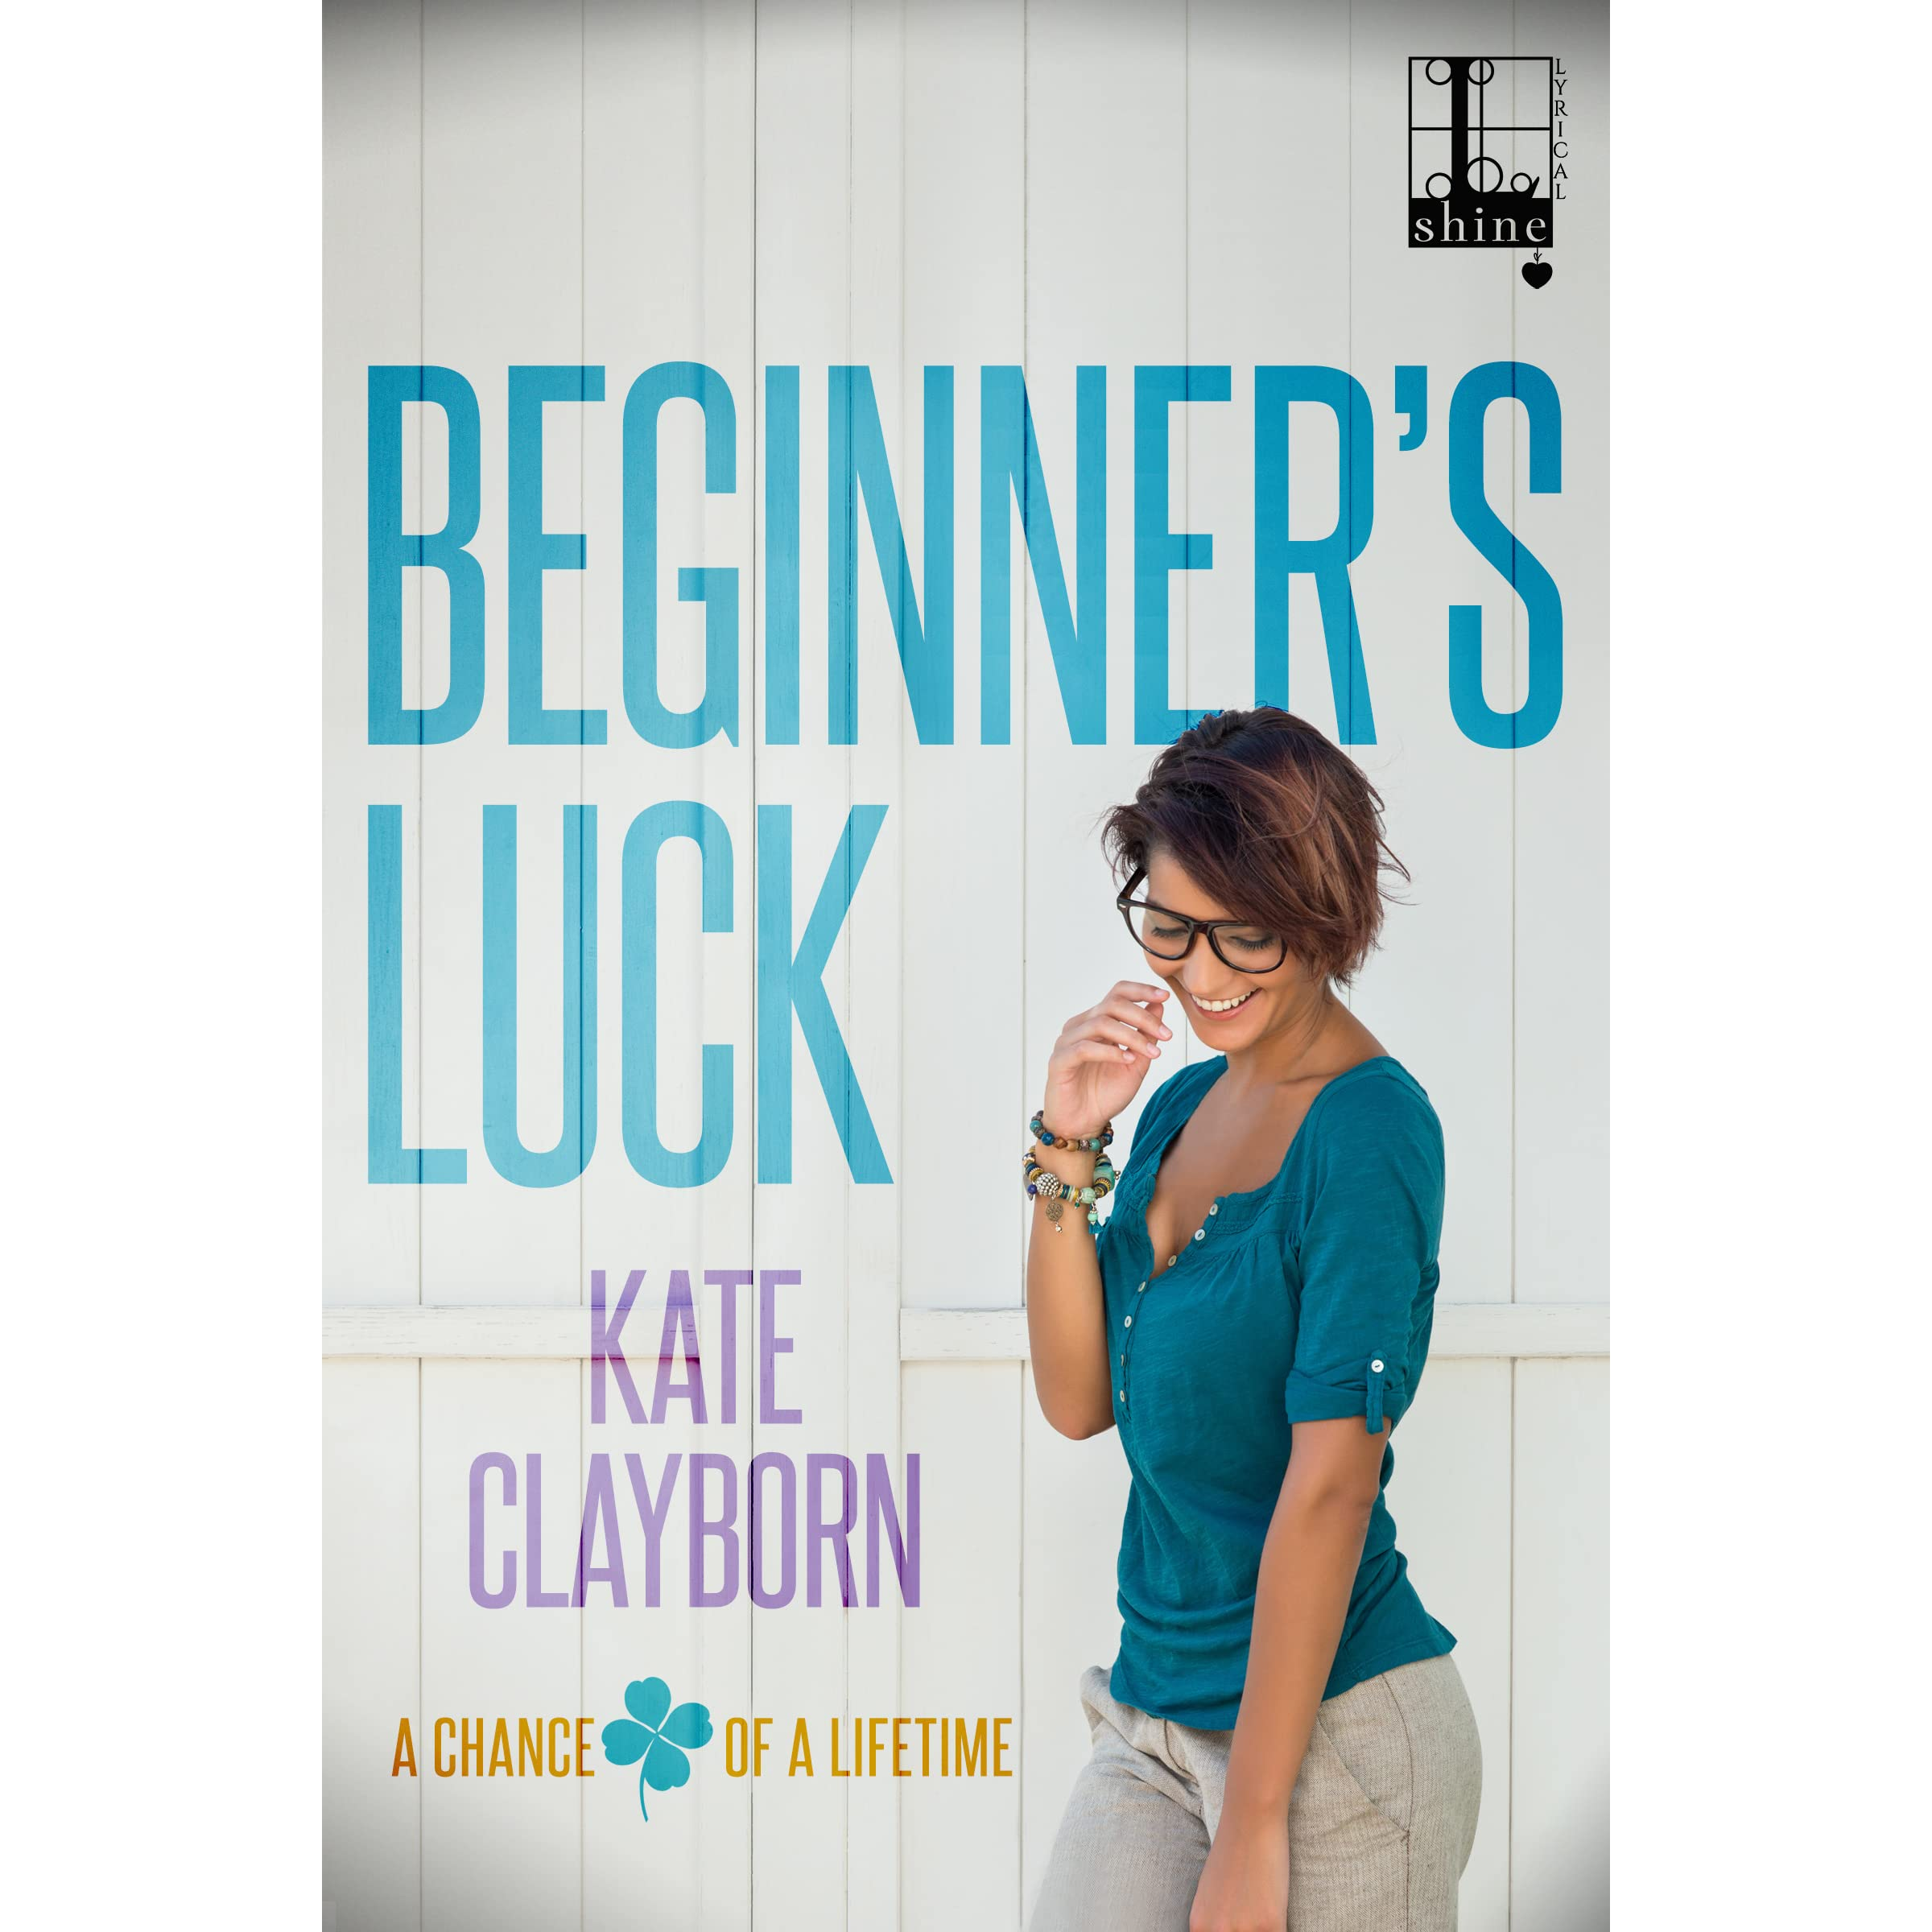 Beginners luck chance of a lifetime #1 by kate clayborn